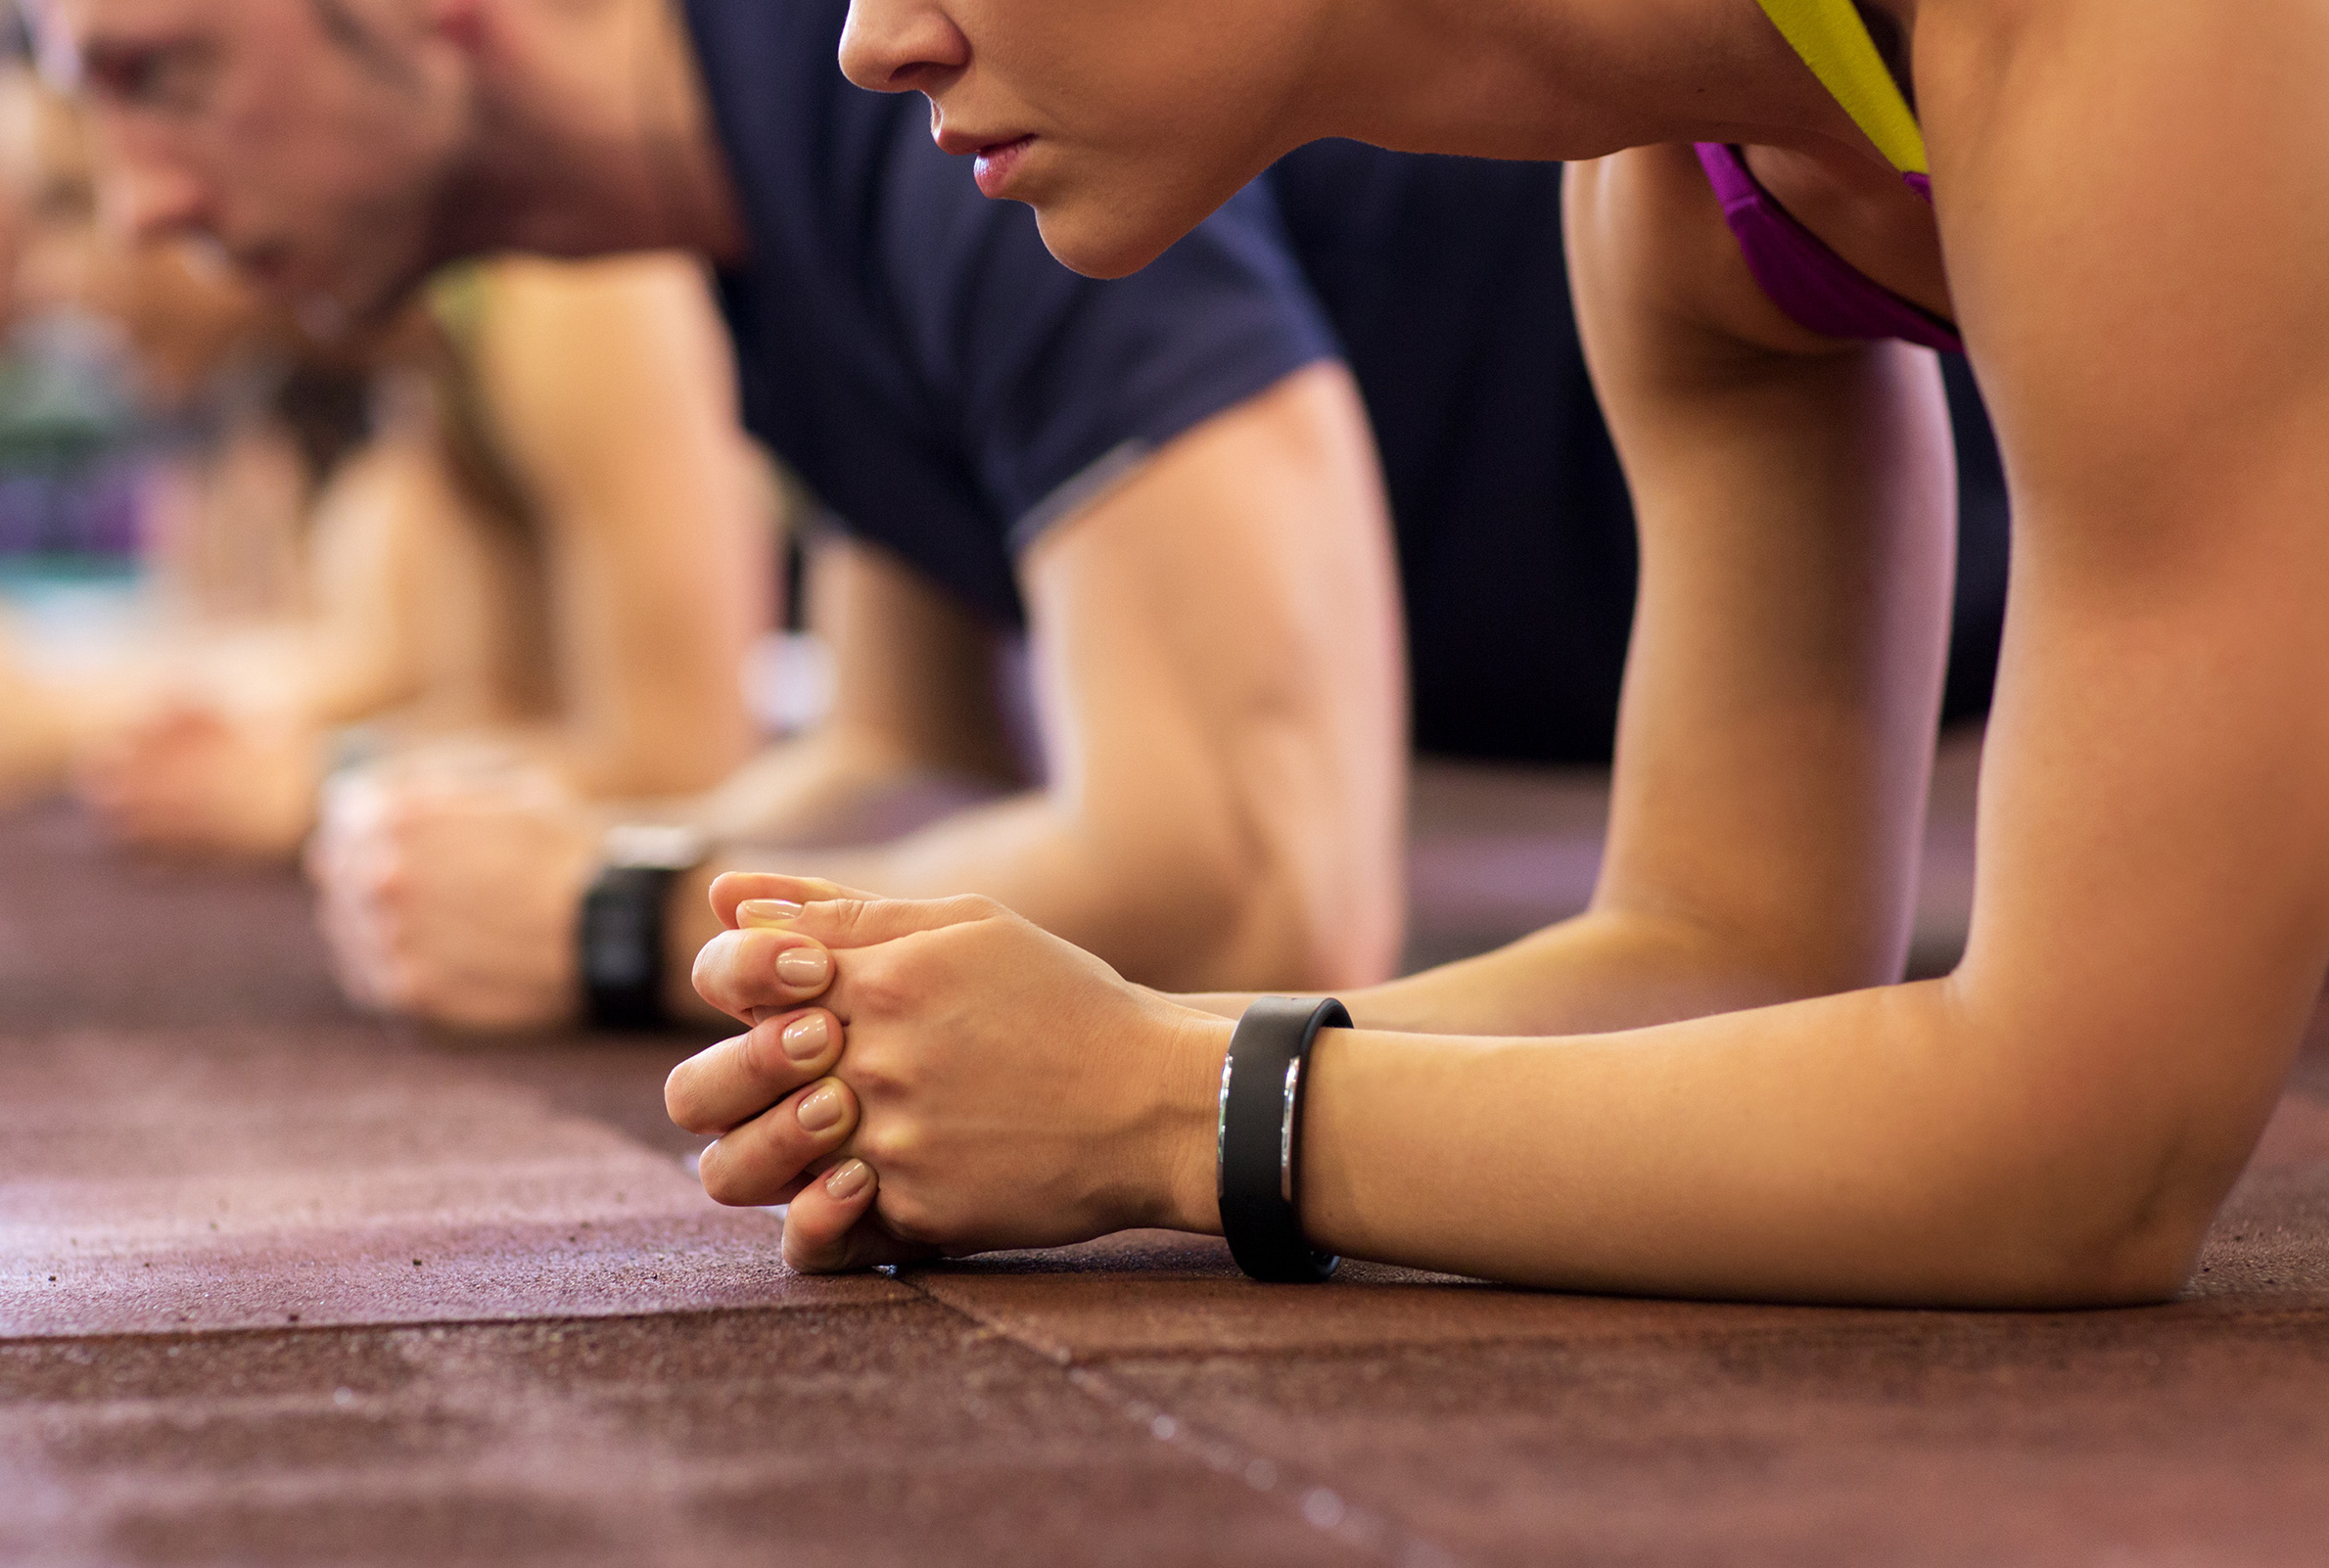 best fitness tracker for very small wrist - women's watches for small wrists